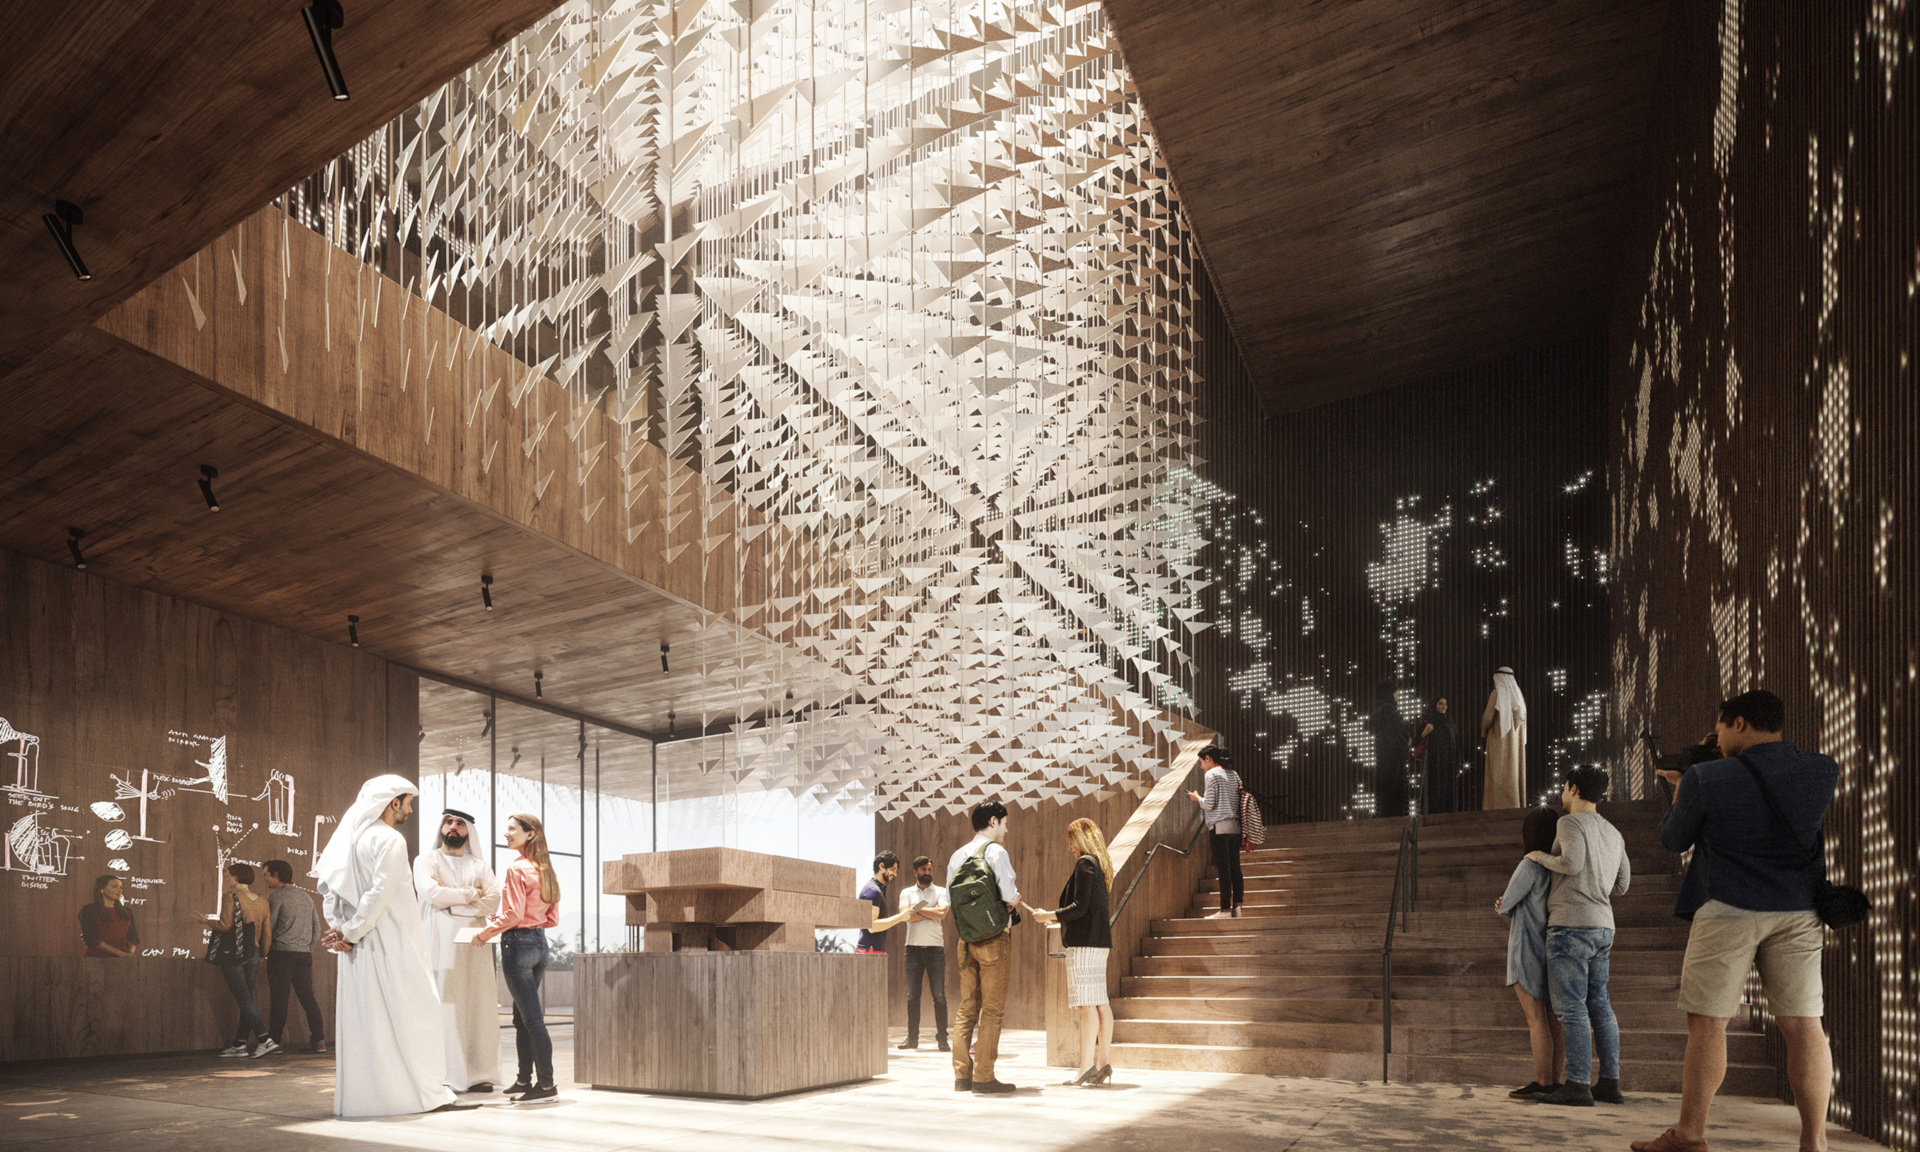 Visualization of the Polish pavilion, the main attraction at the 2020 World Expo in Dubai | WSP